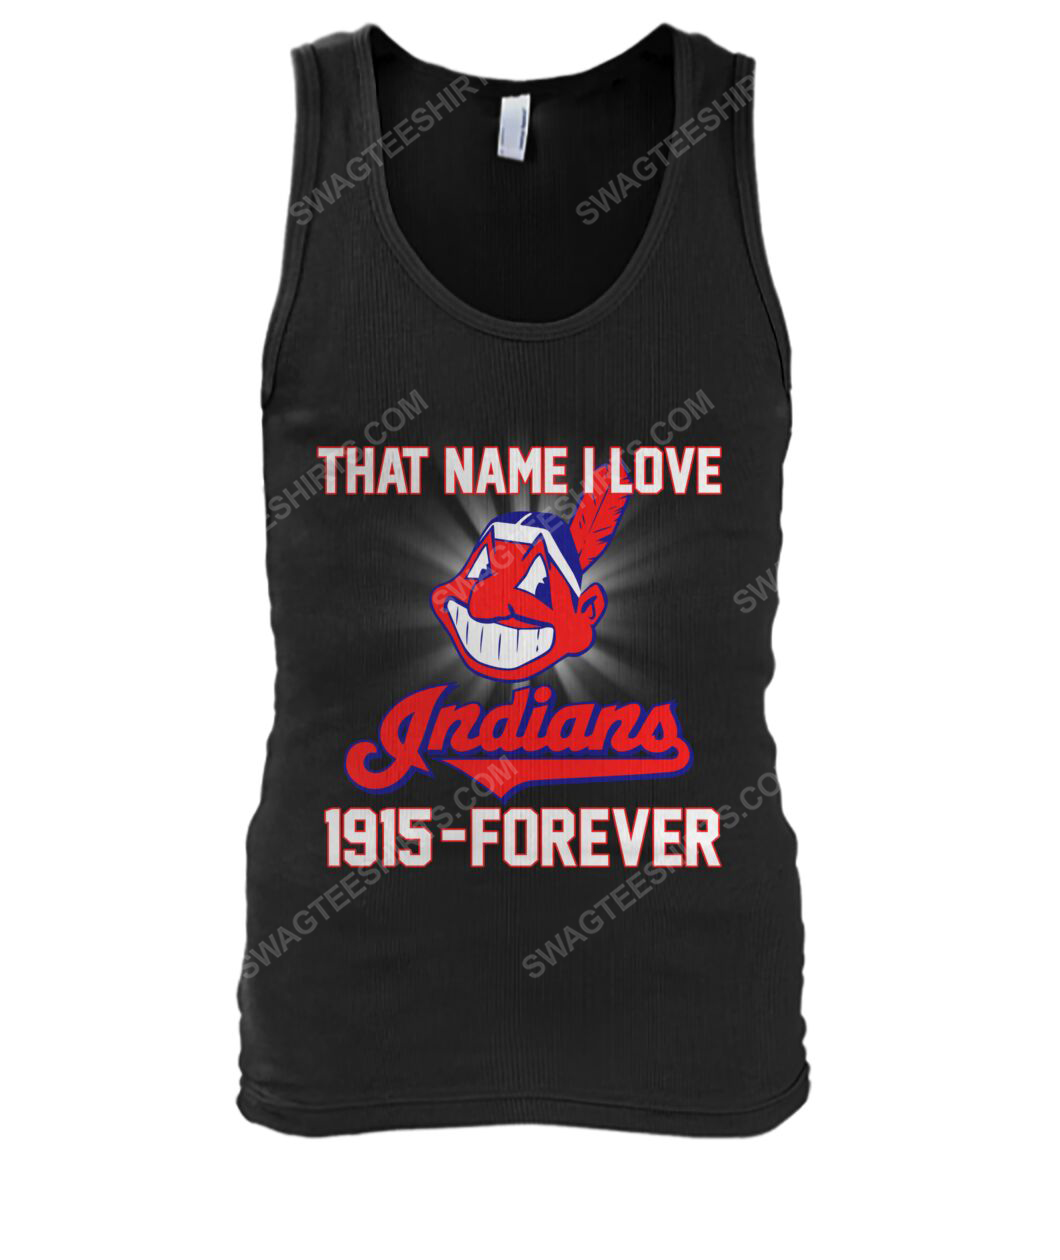 That name i love cleveland indians 1915 forever tank top 1